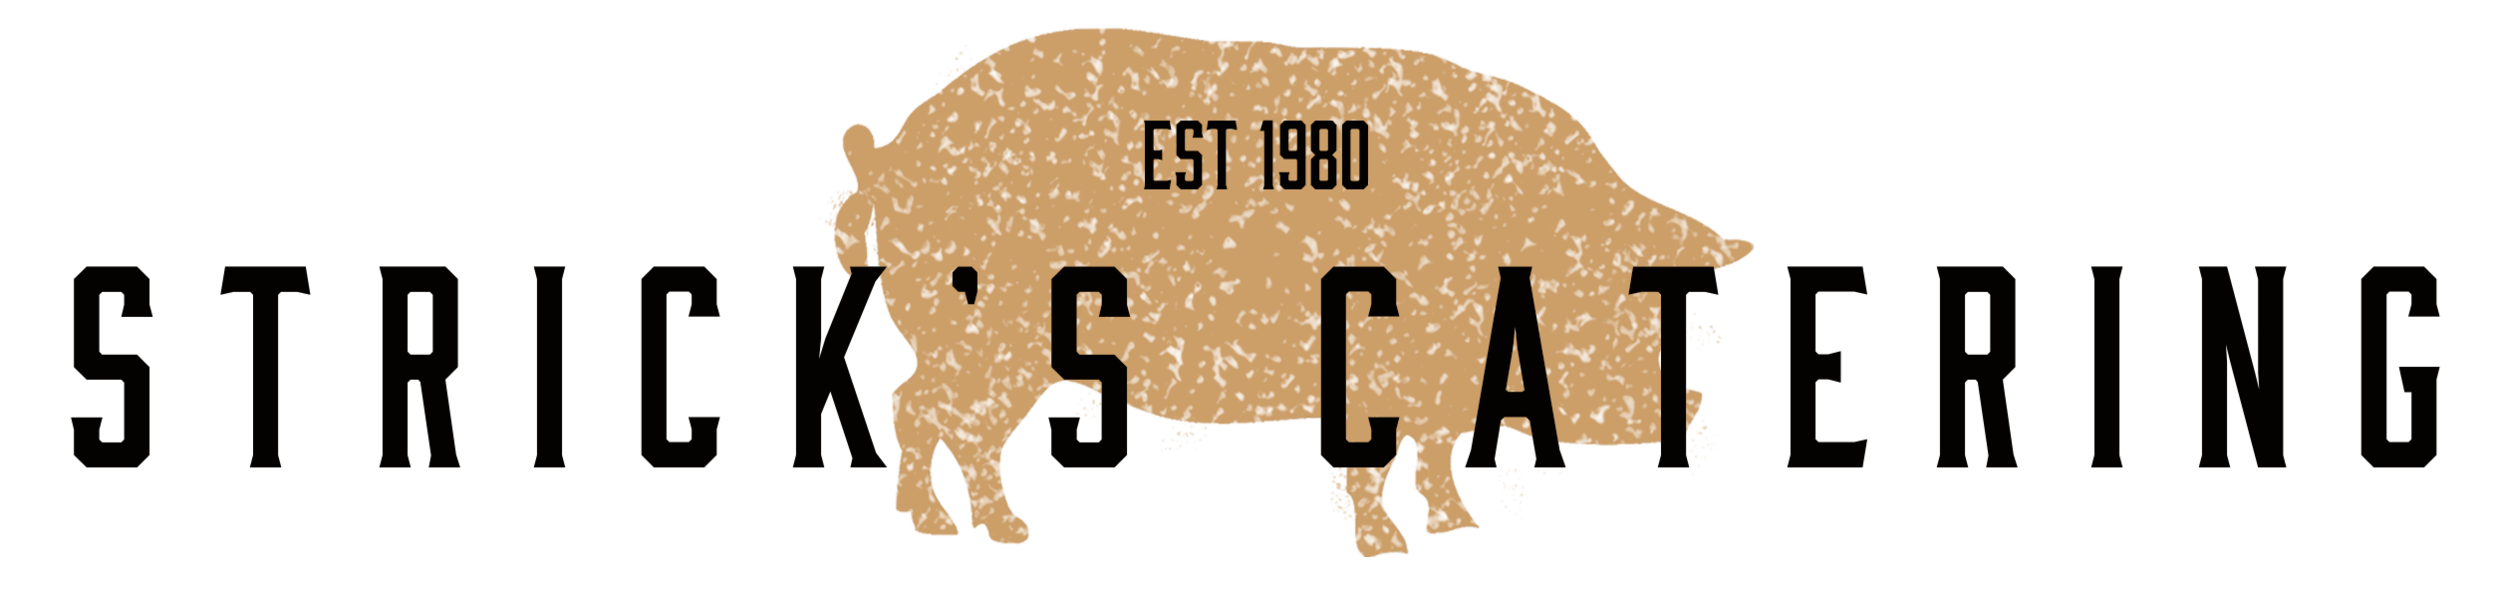 catering logo black letters.png